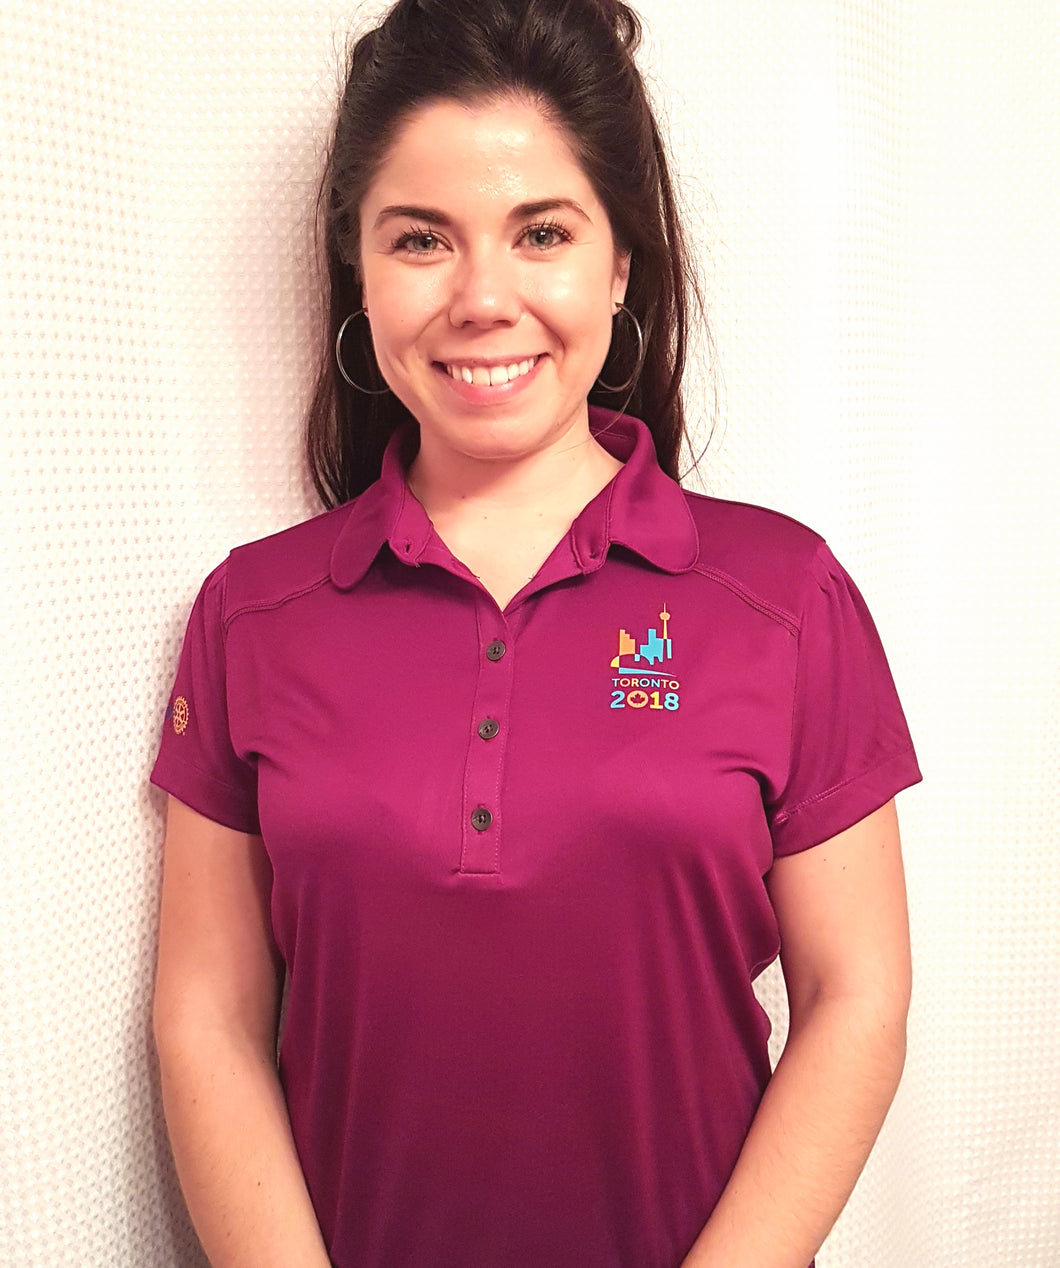 The Toronto 2018 Polo Shirt - Women's